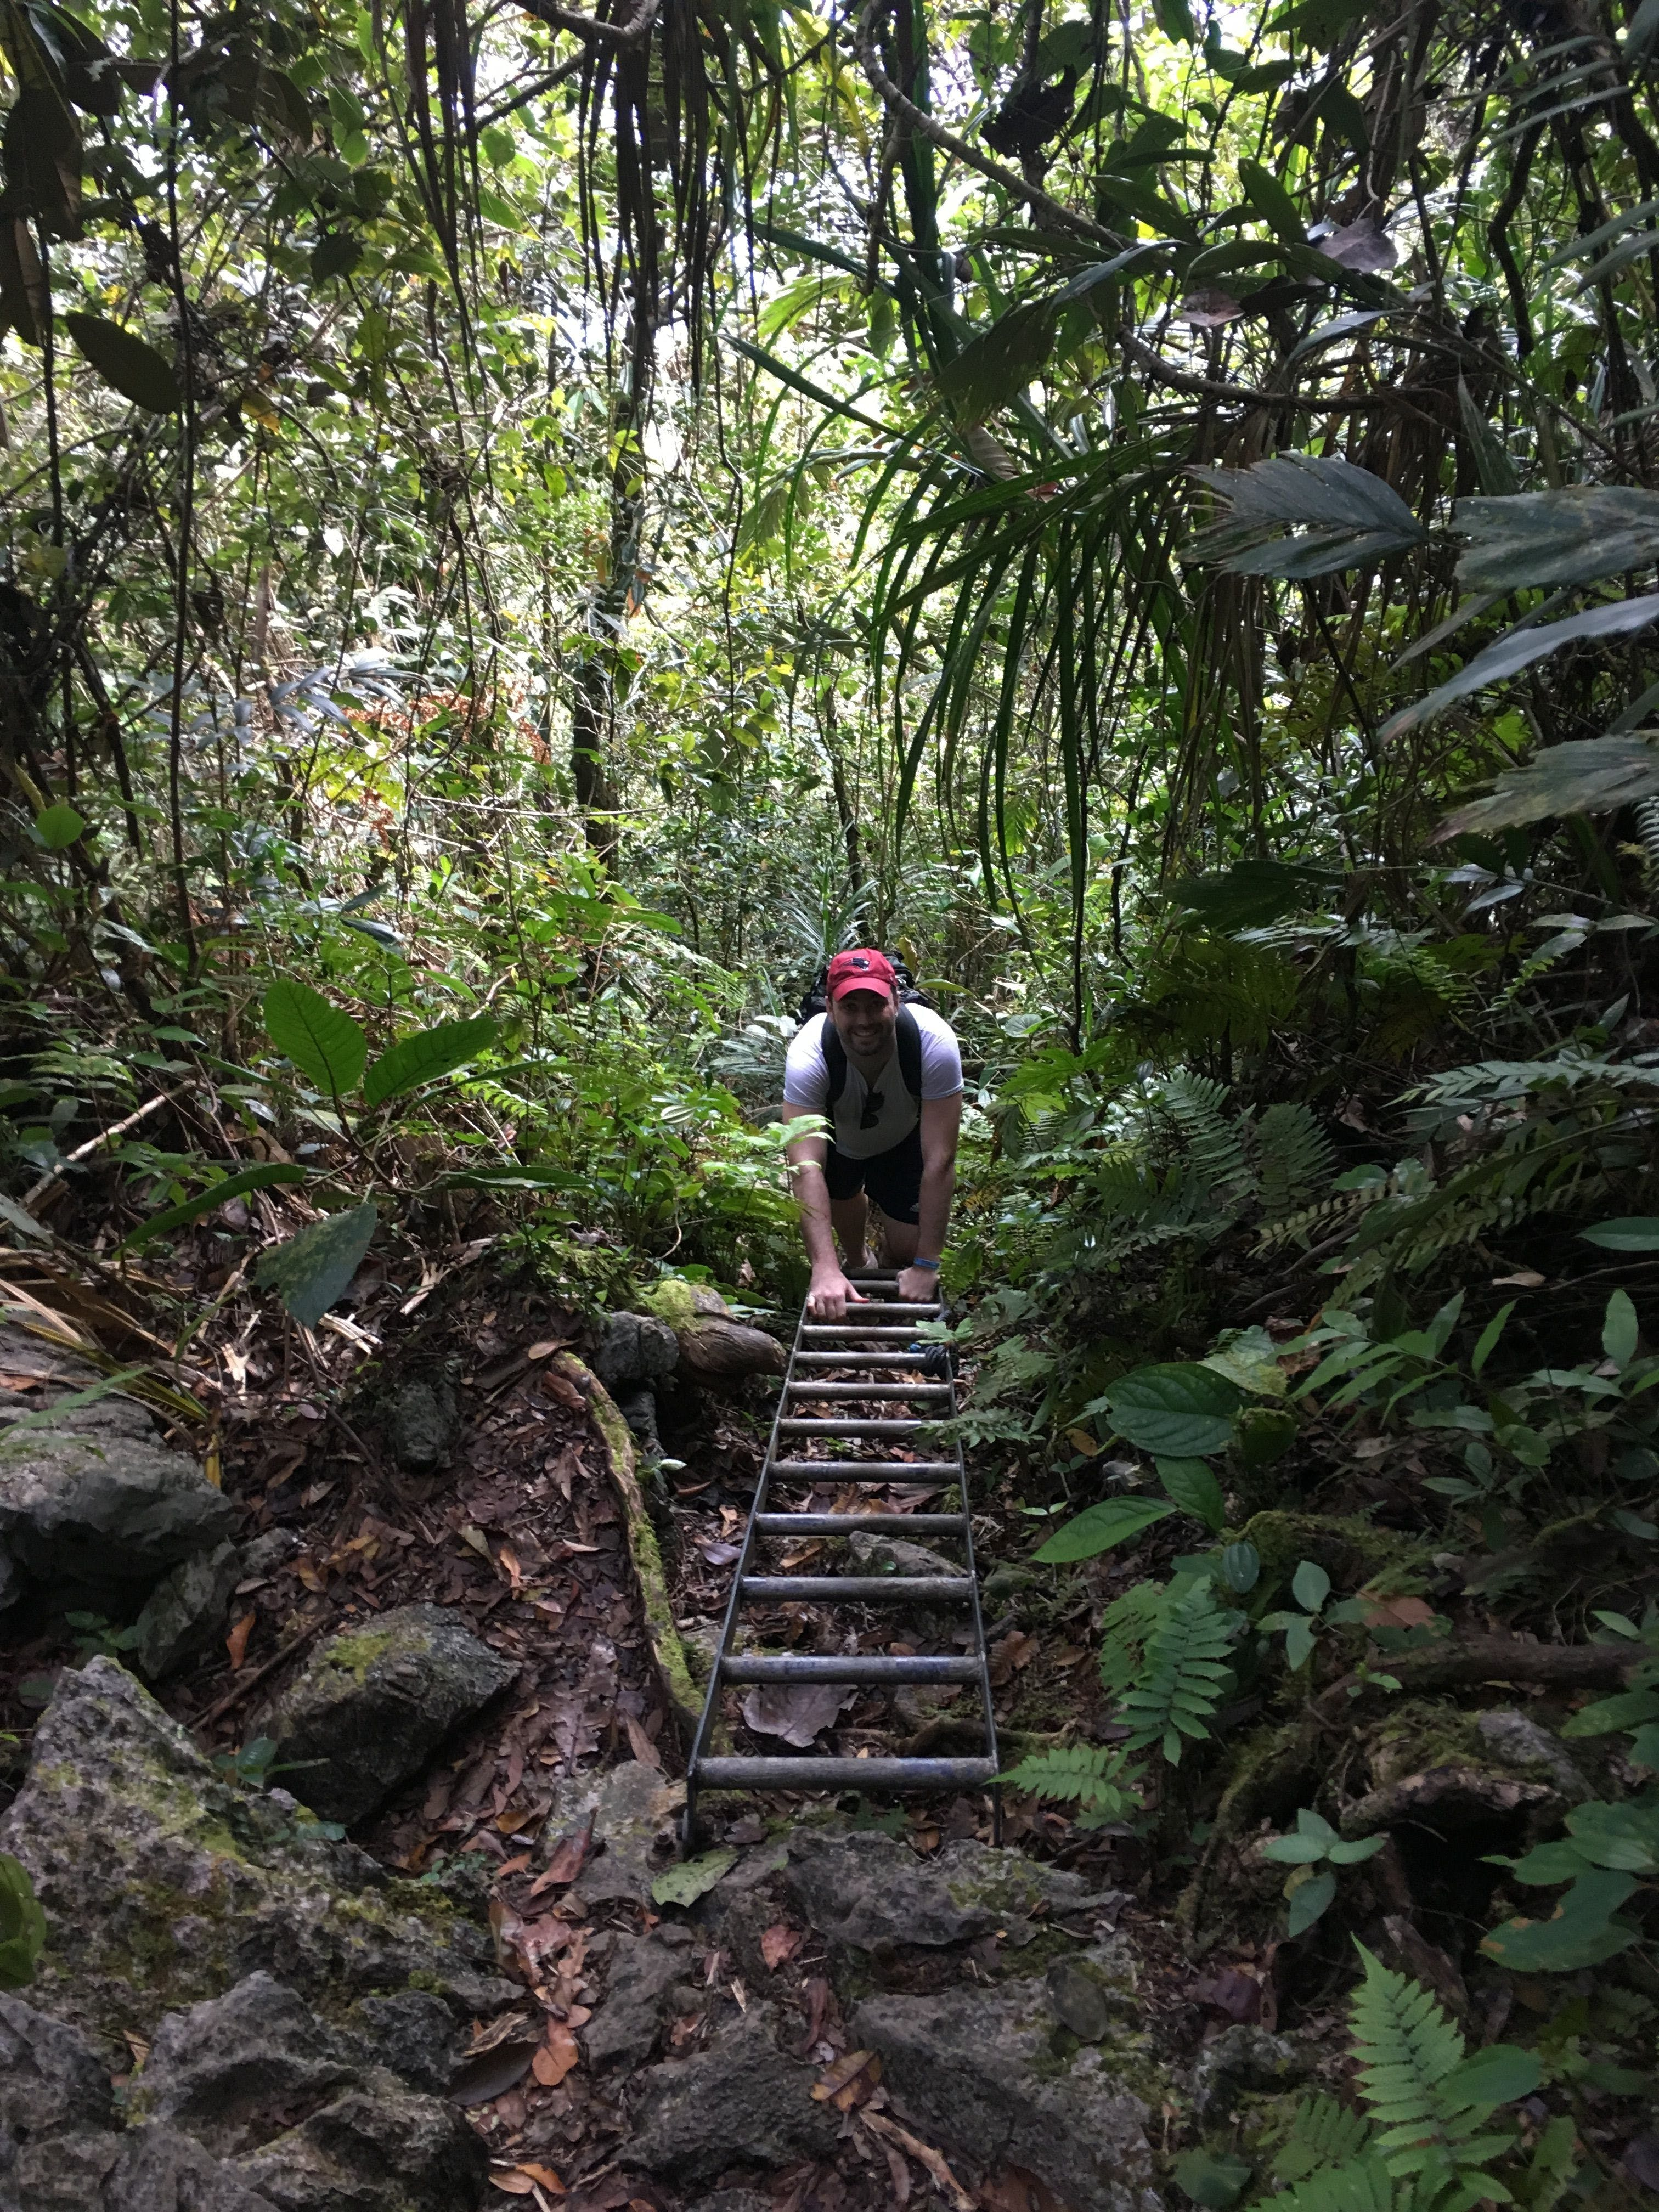 The Mulu climb is filled with steep ascents